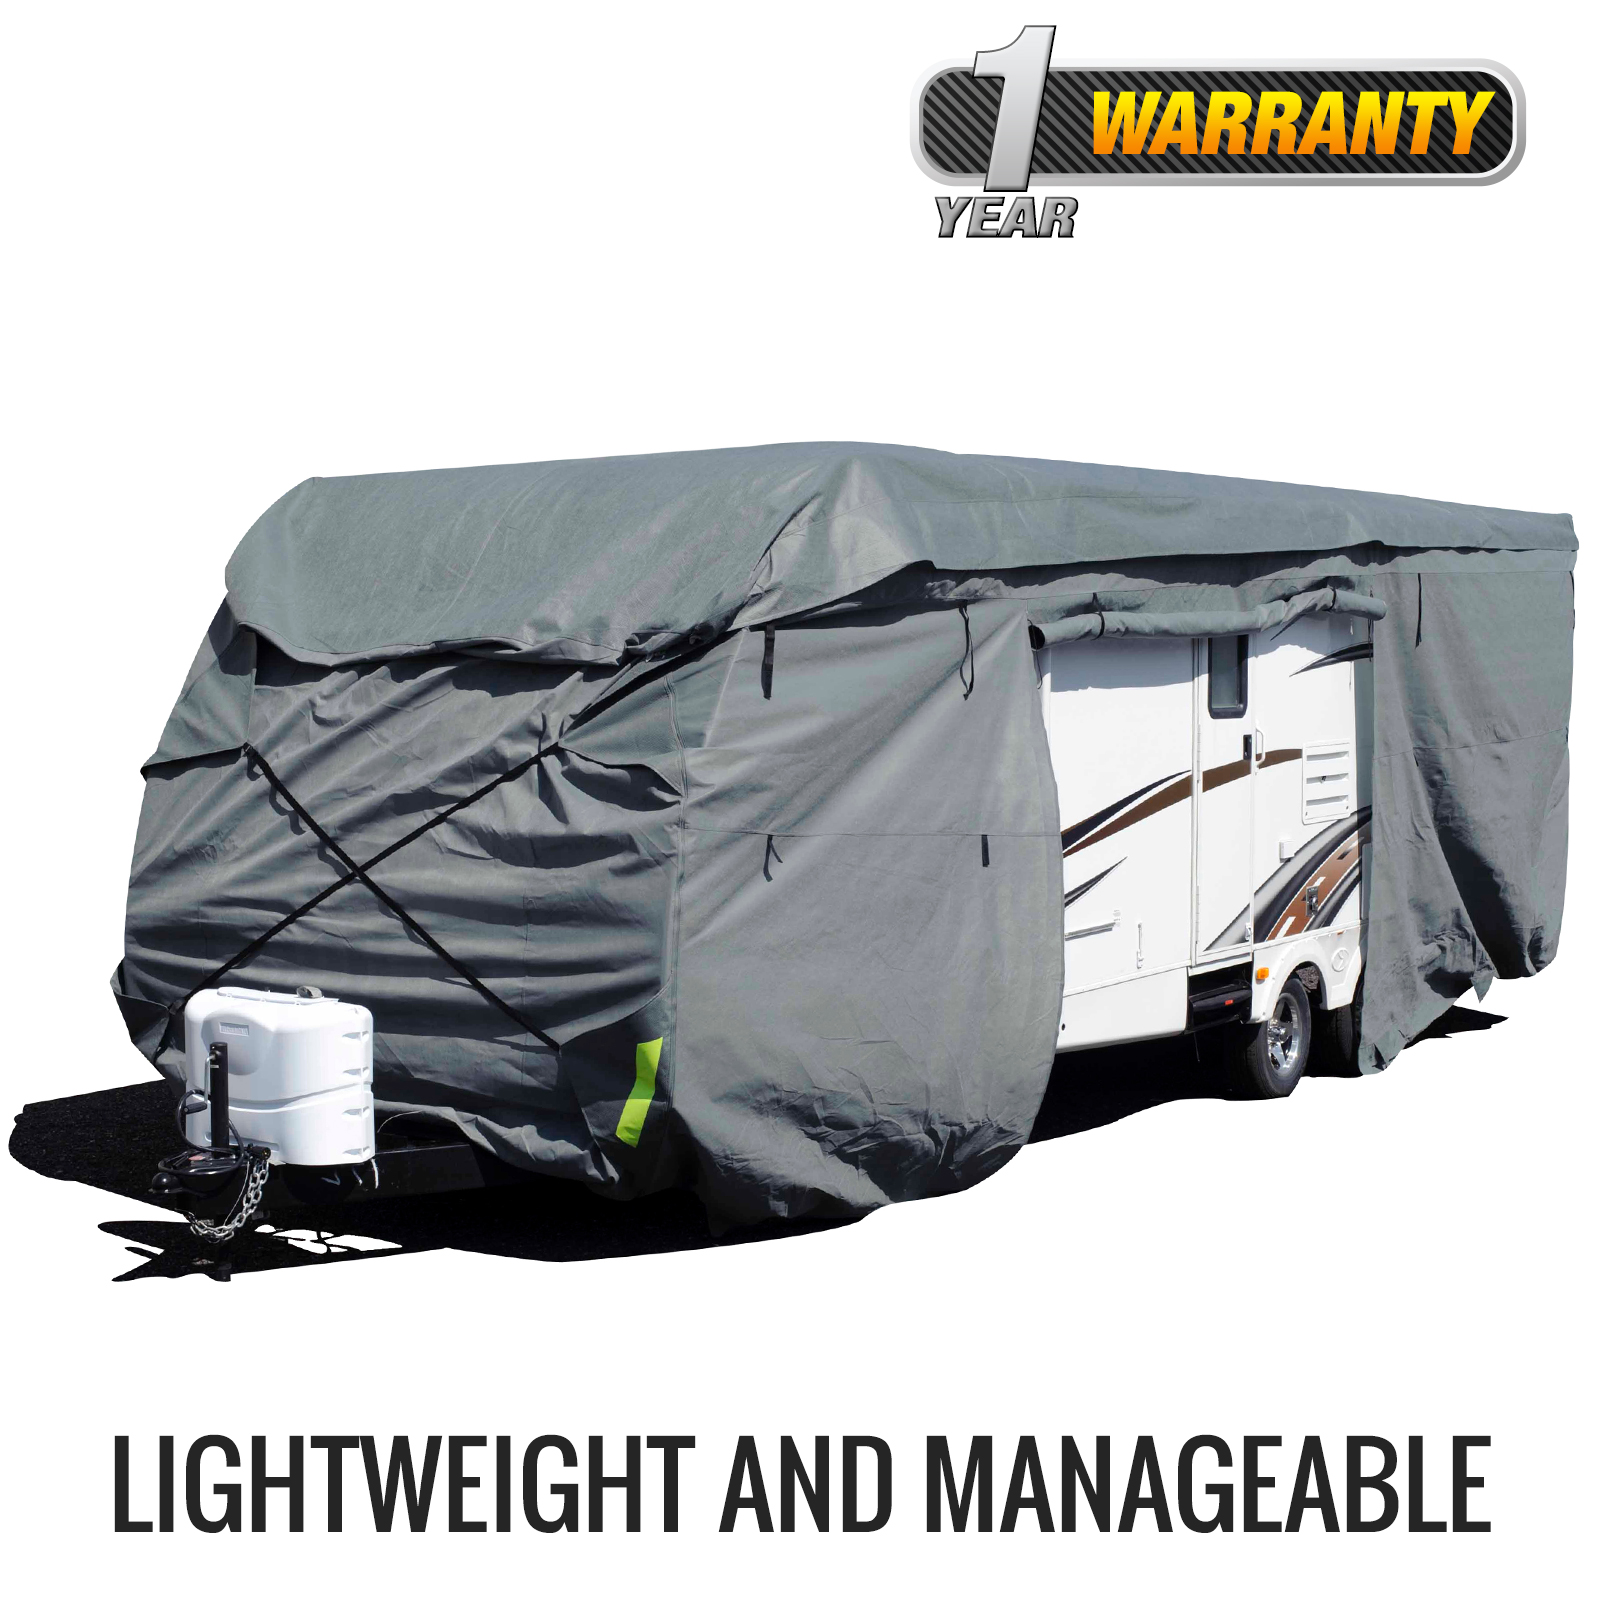 Budge Standard Toy Hauler or Travel Trailer Cover (Gray) Size A Up to 21' Long